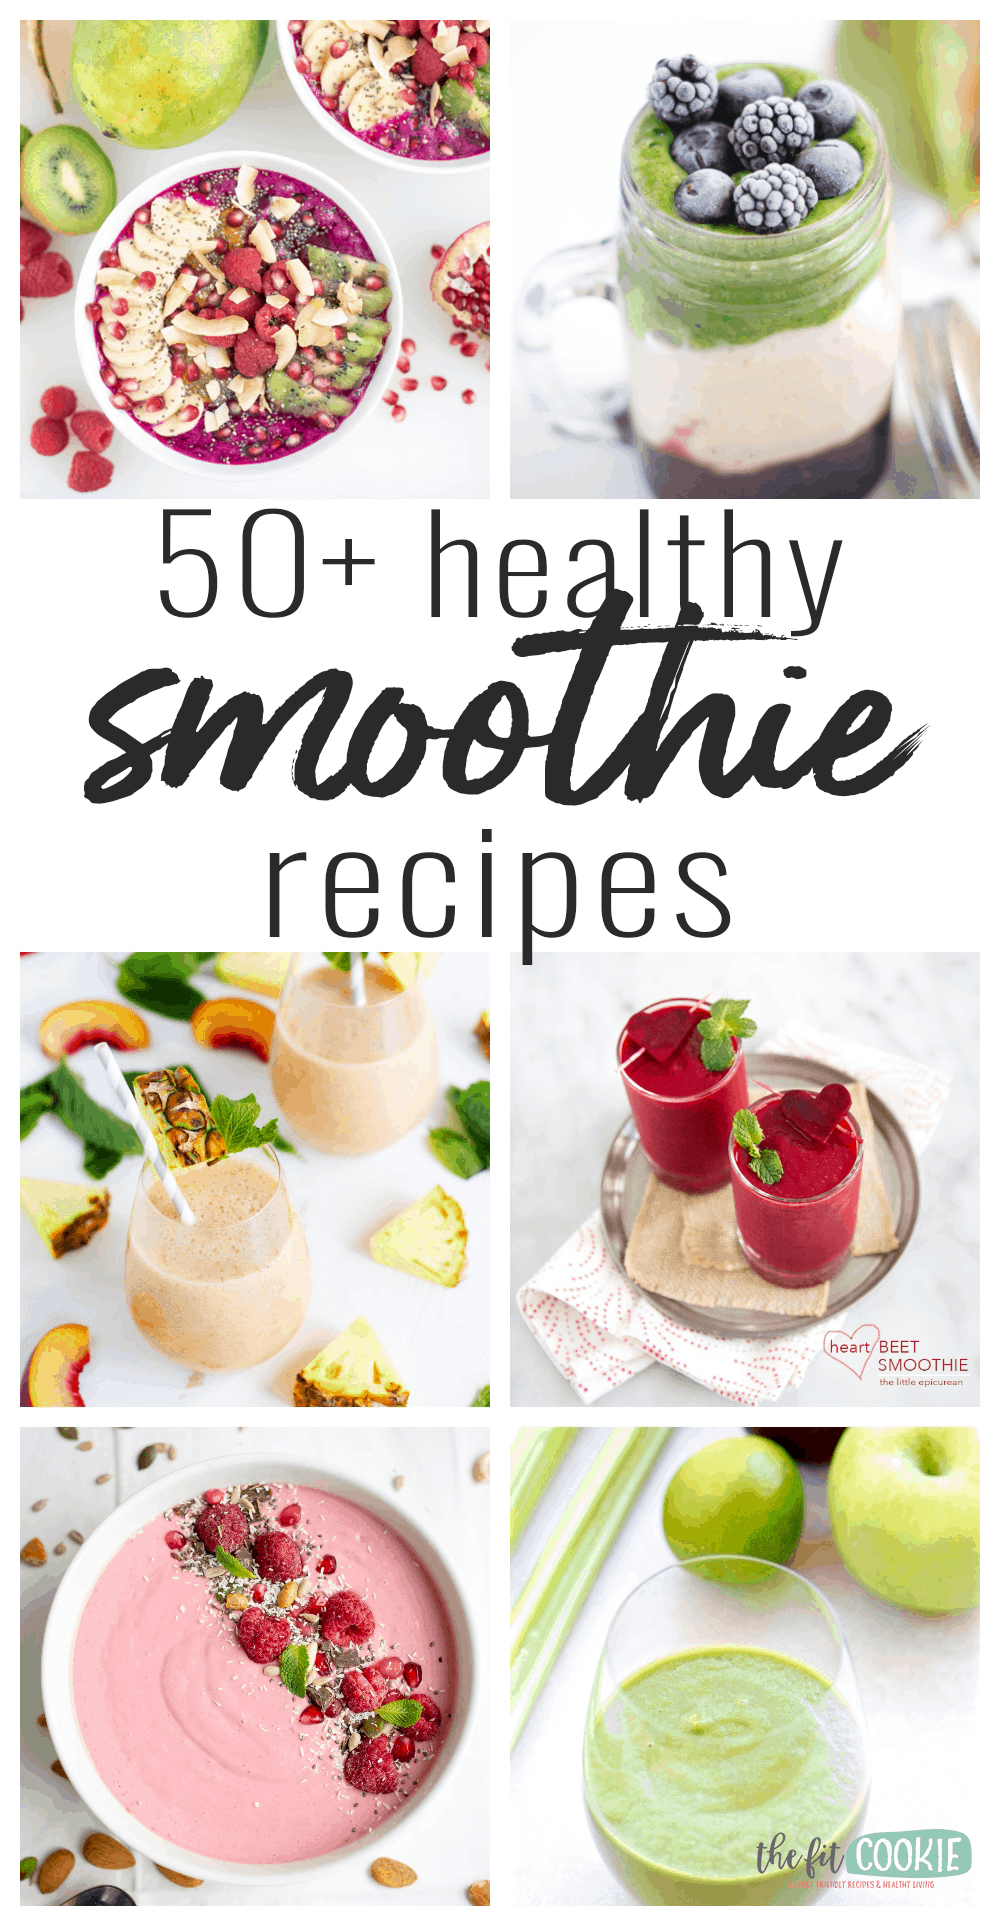 photo collage of healthy dairy free smoothies with text overlay